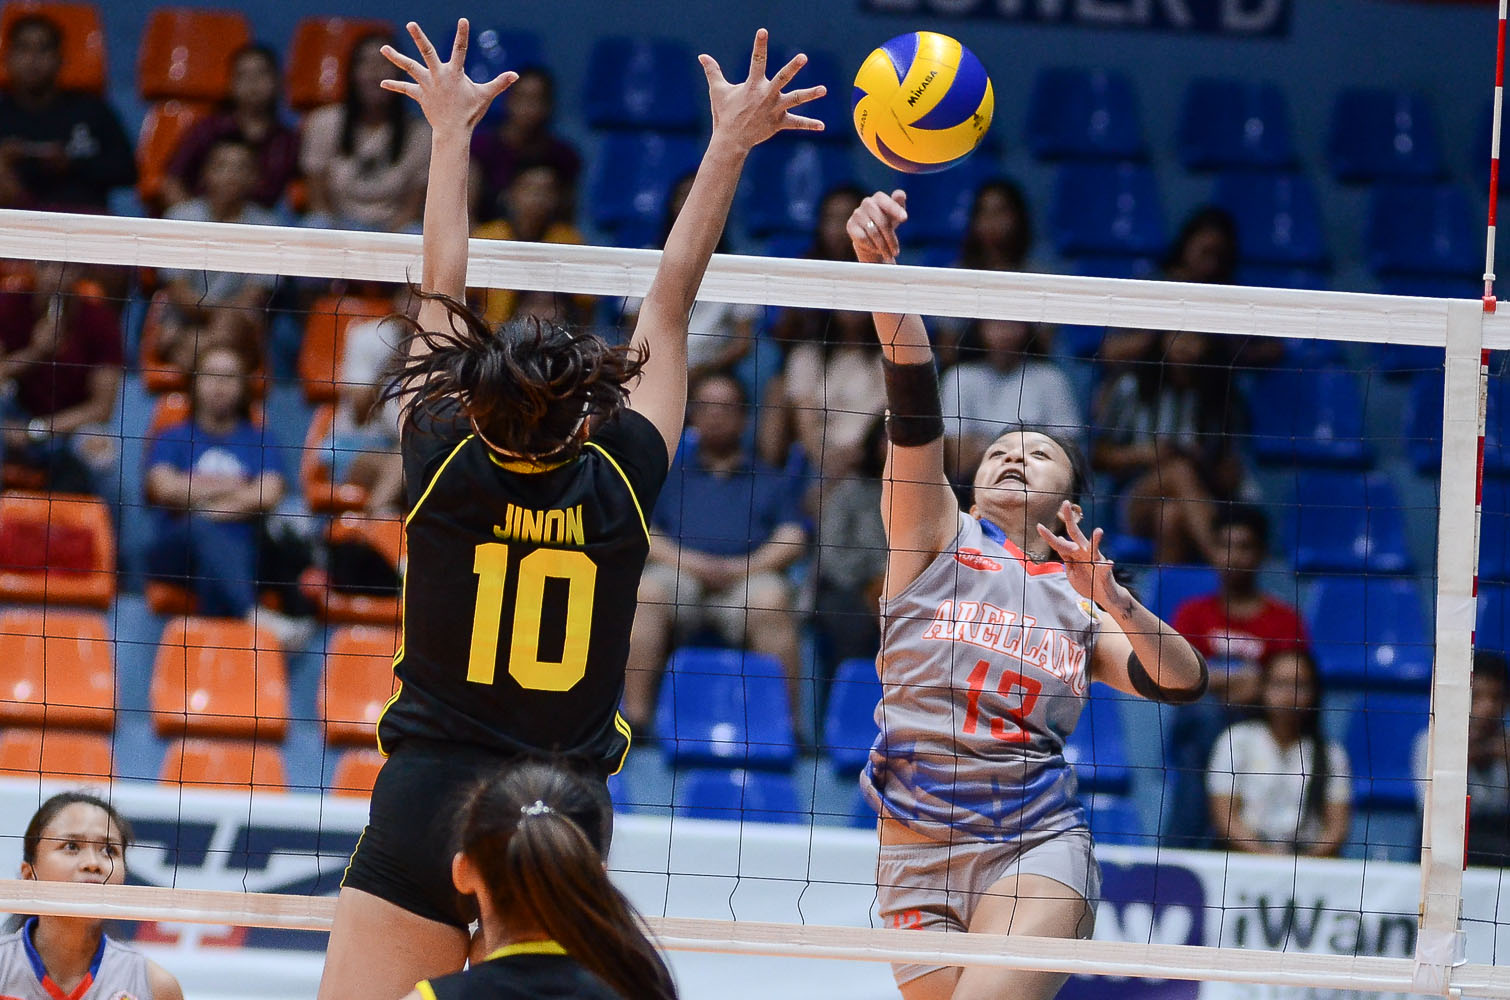 Tiebreaker Times Arocha, Arellano put on clinic against TIP for first win AU News PVL Volleyball  TIP Lady Engineers Regine Arocha Necole Ebuen Khem Consencino Arellano Women's Volleyball Achilles Paril 2019 PVL Season 2019 PVL Collegiate Conference